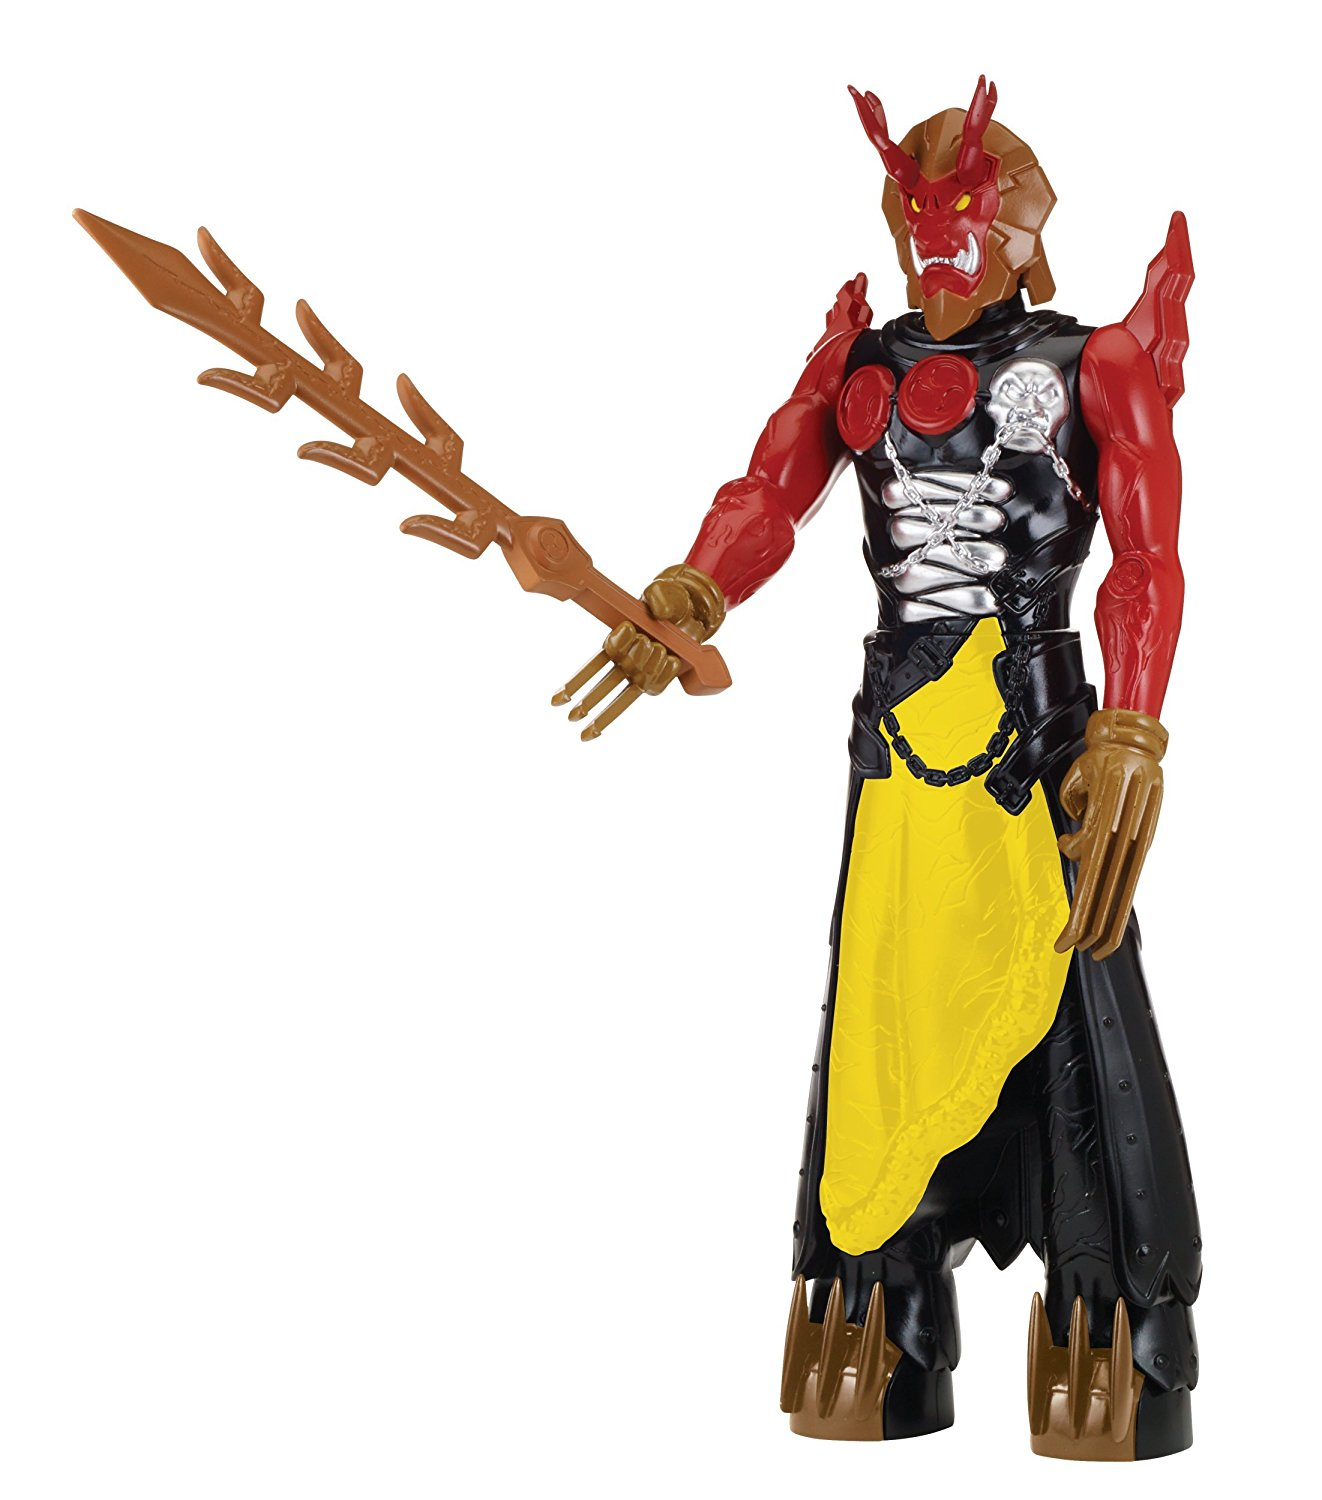 "Dino Super Charge 12"" T-Rex Super Charge Red Ranger Action Figure, The Power Rangers... by"